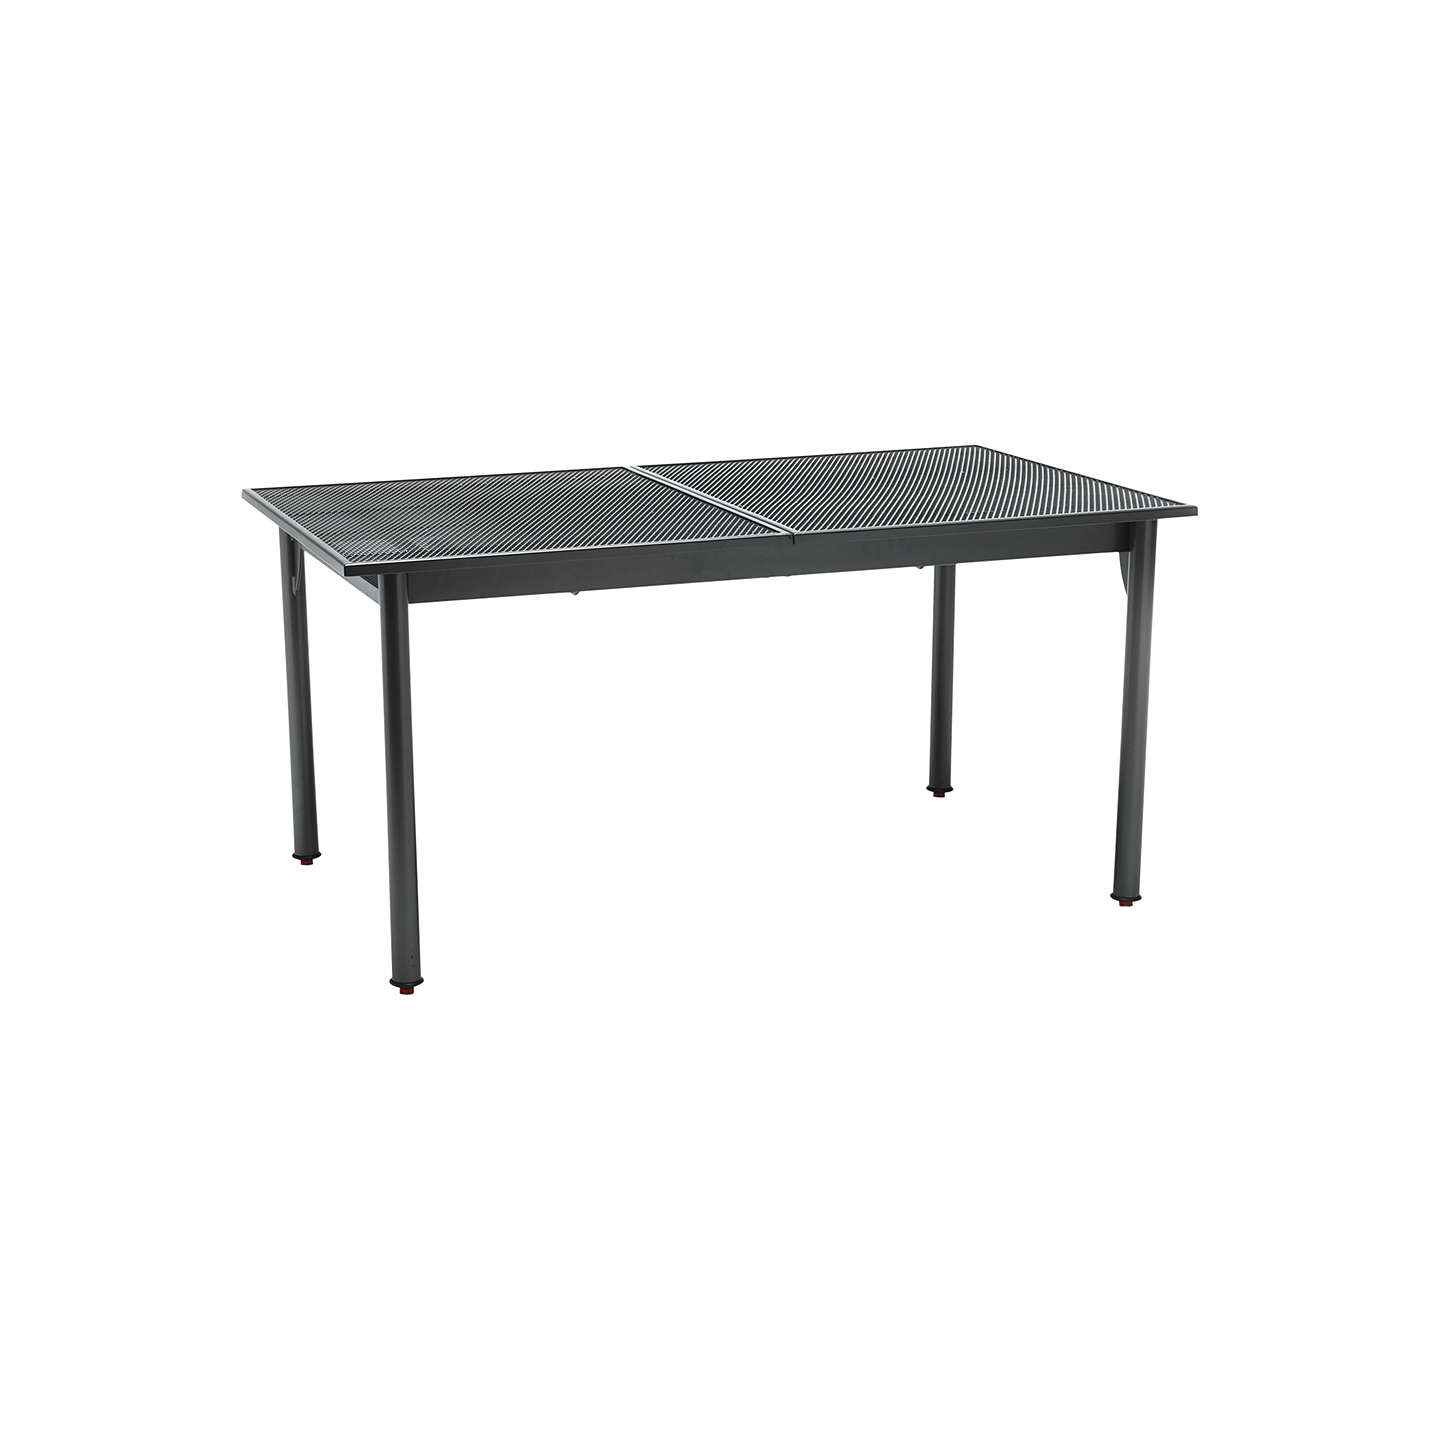 BuyJohn Lewis Henley by KETTLER Rectangular 6-8 Seater Extending Outdoor Dining Table, Grey Online at johnlewis.com